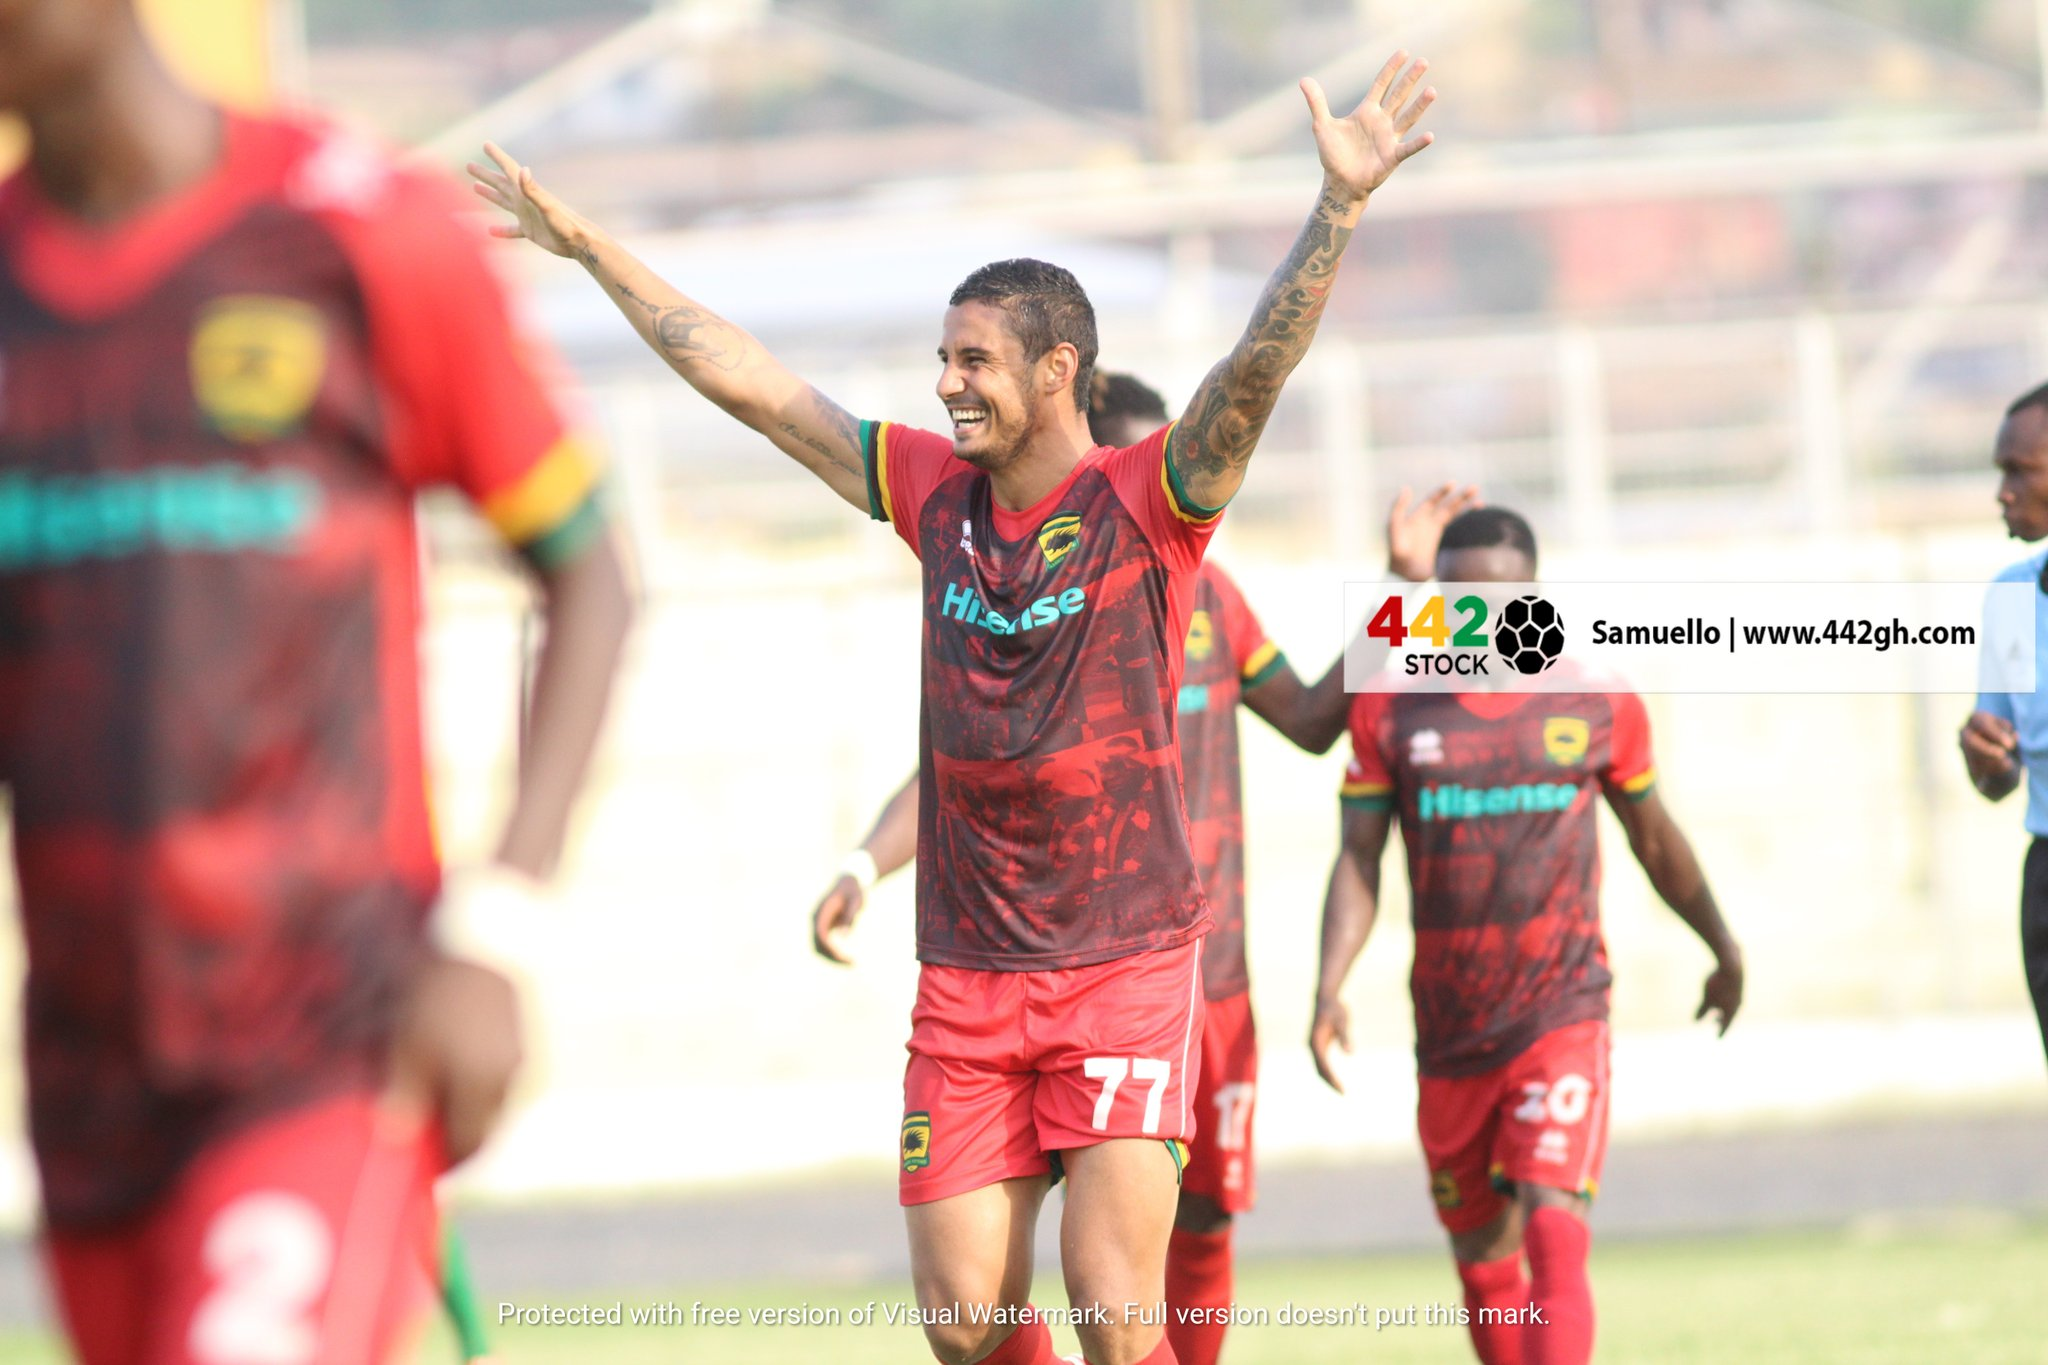 EyYqx BXIAMXKil?format=jpg&name=large - PHOTOS: Brazilian Striker Michael Vinicius Scores First Asante Kotoko goal On His Debut game against Bechem United